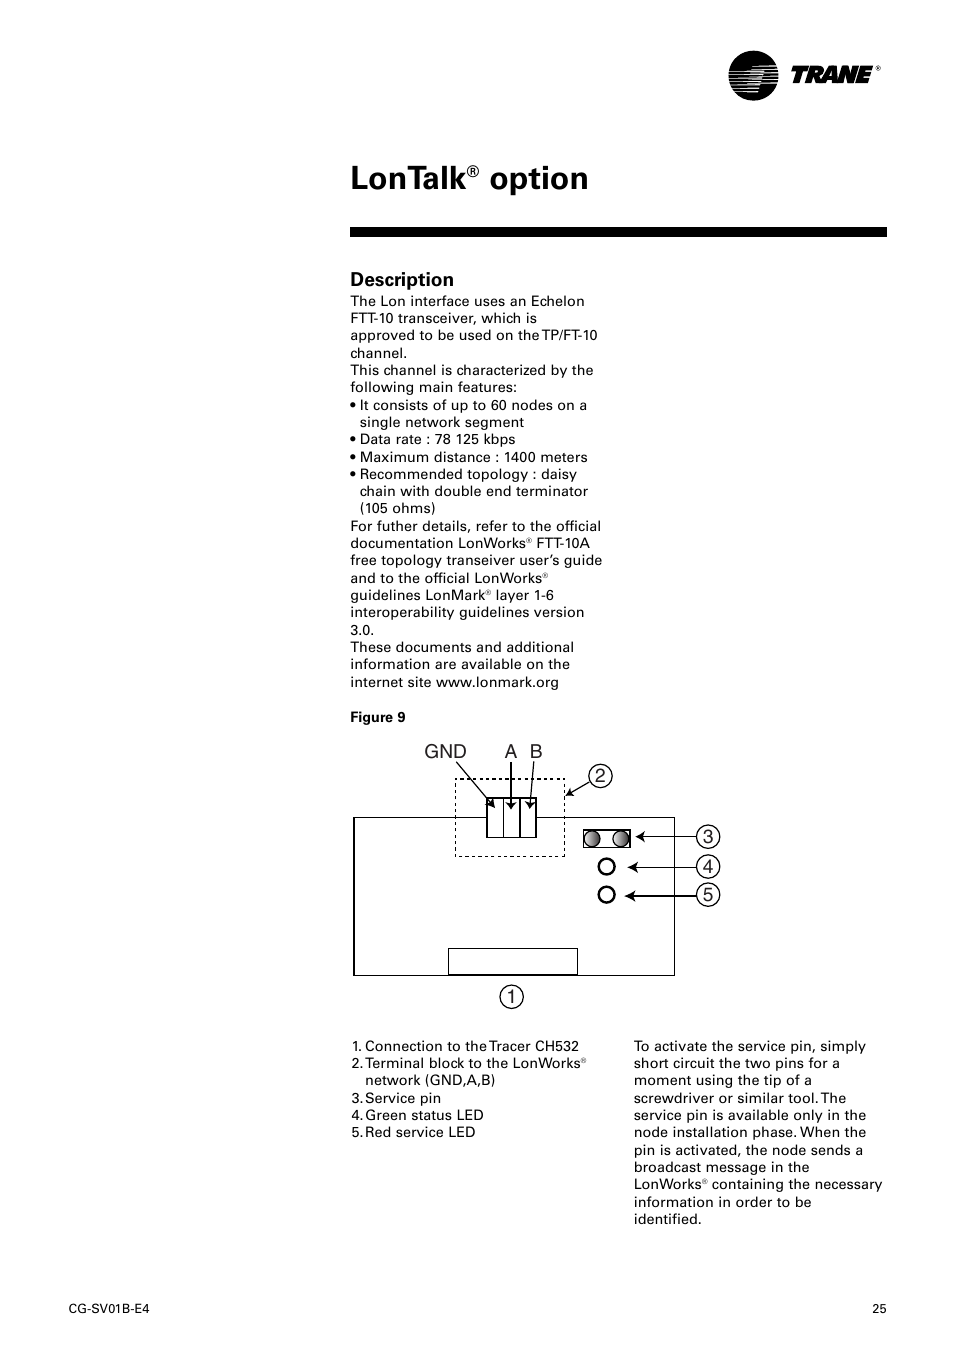 Lon Talk Option Lontalk American Standard Tracer Ch532 User Short Circuit Manual Page 25 32